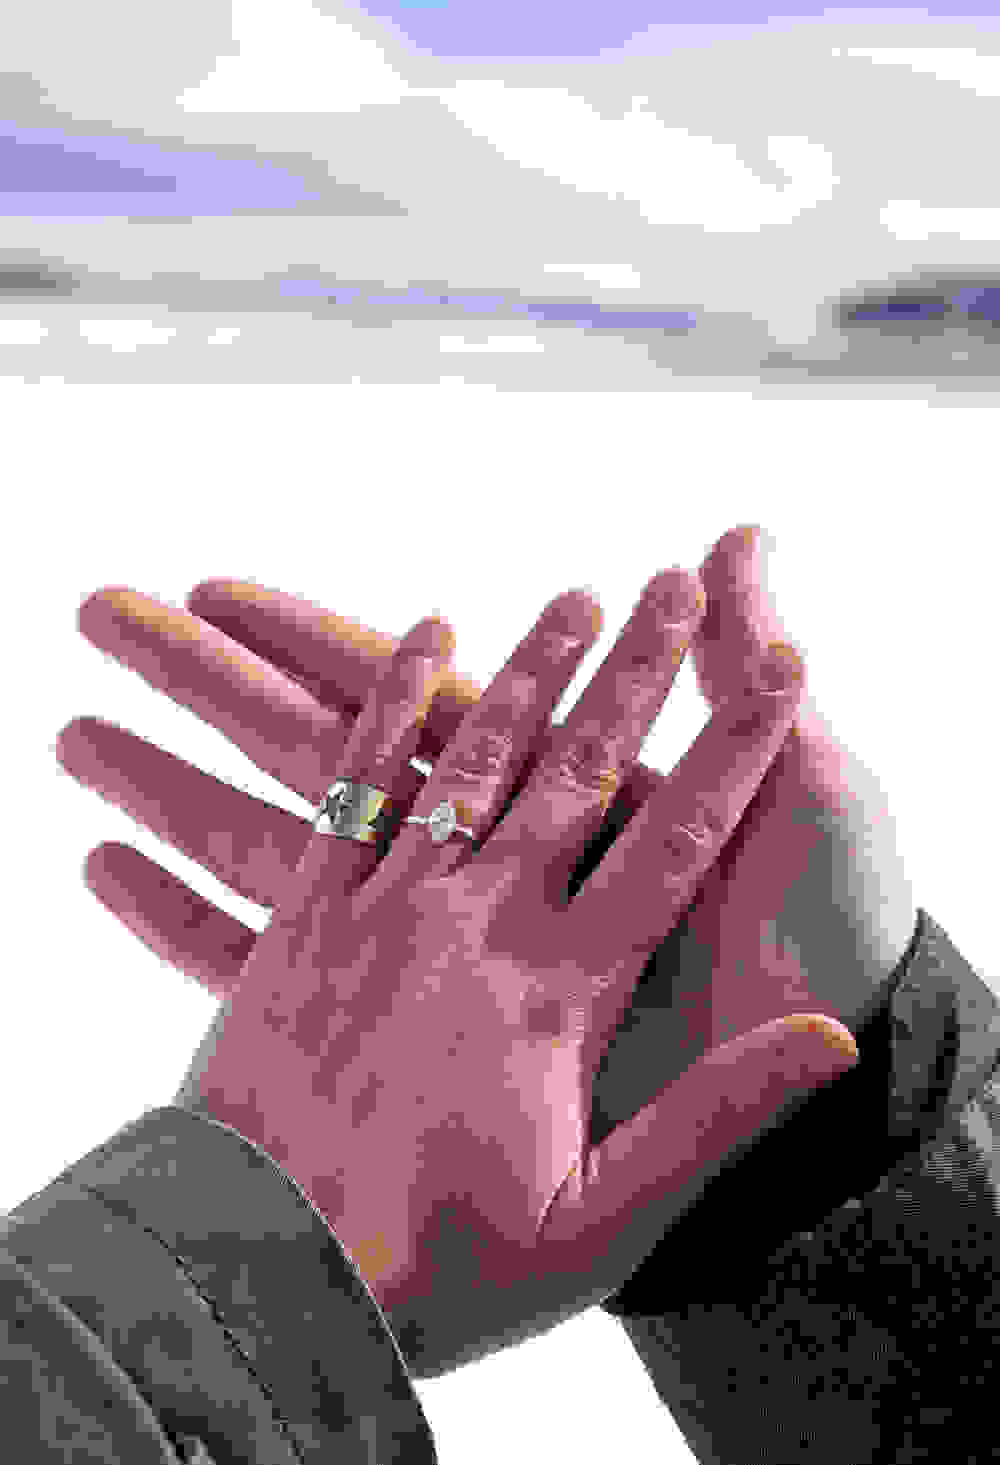 our hands together with the engagment ring